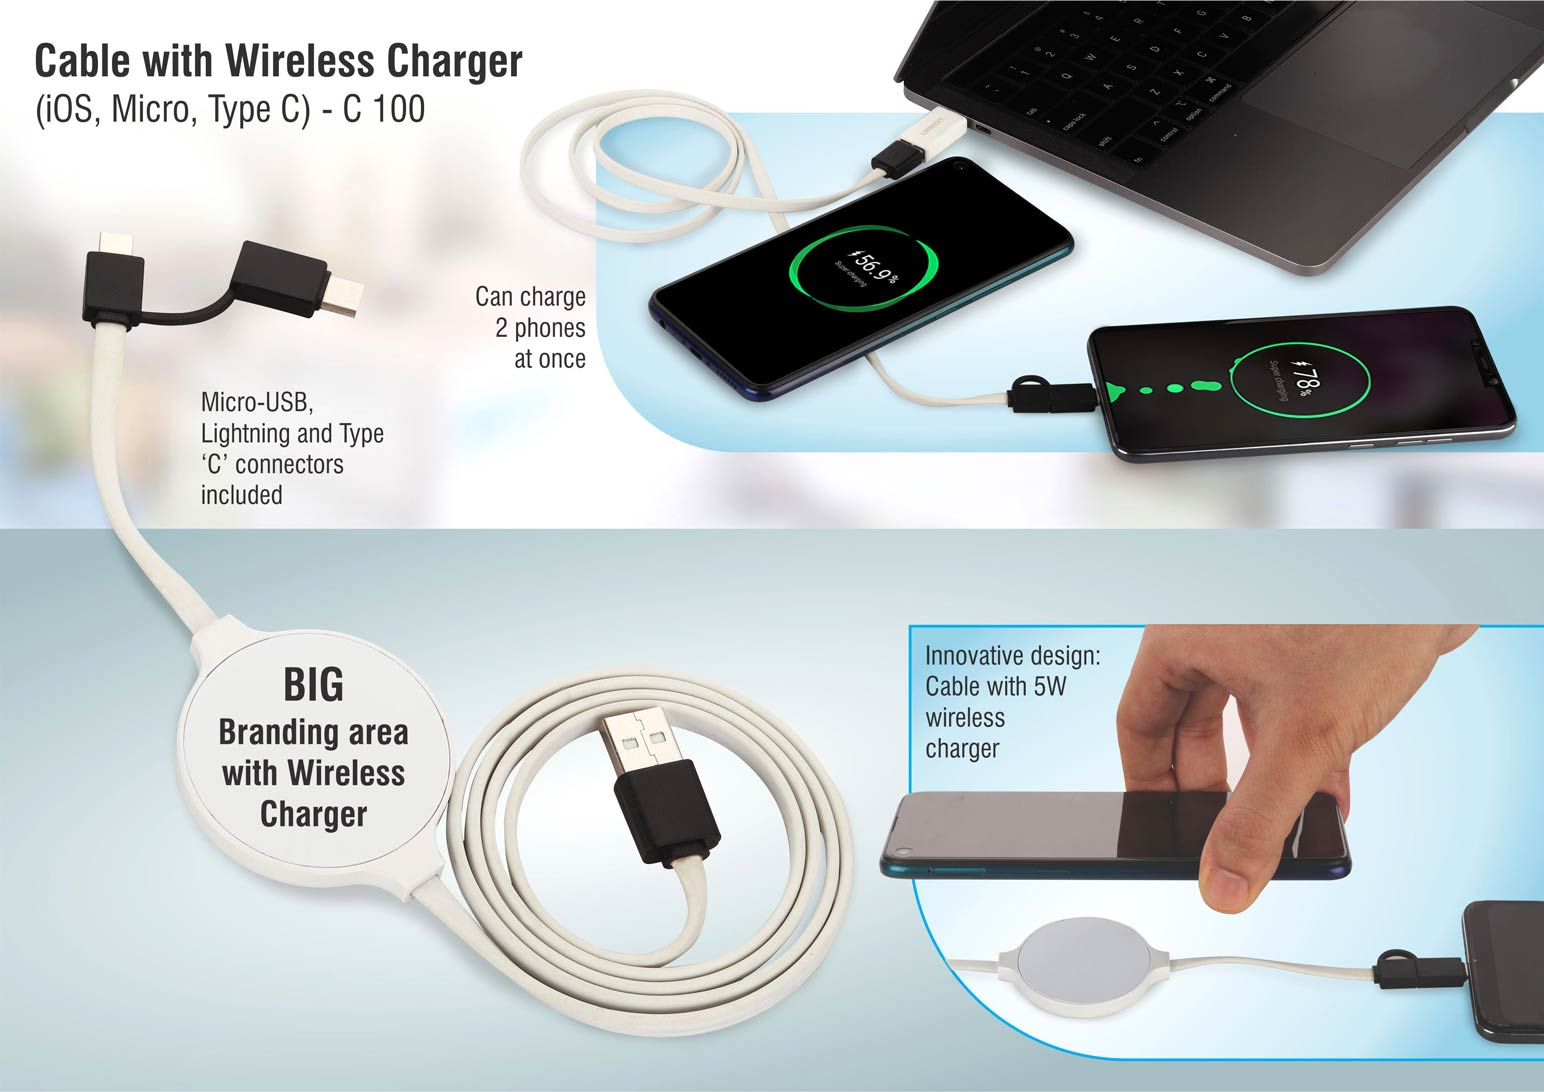 C100 - Cable with Wireless Charger (iOS, Micro, Type C)